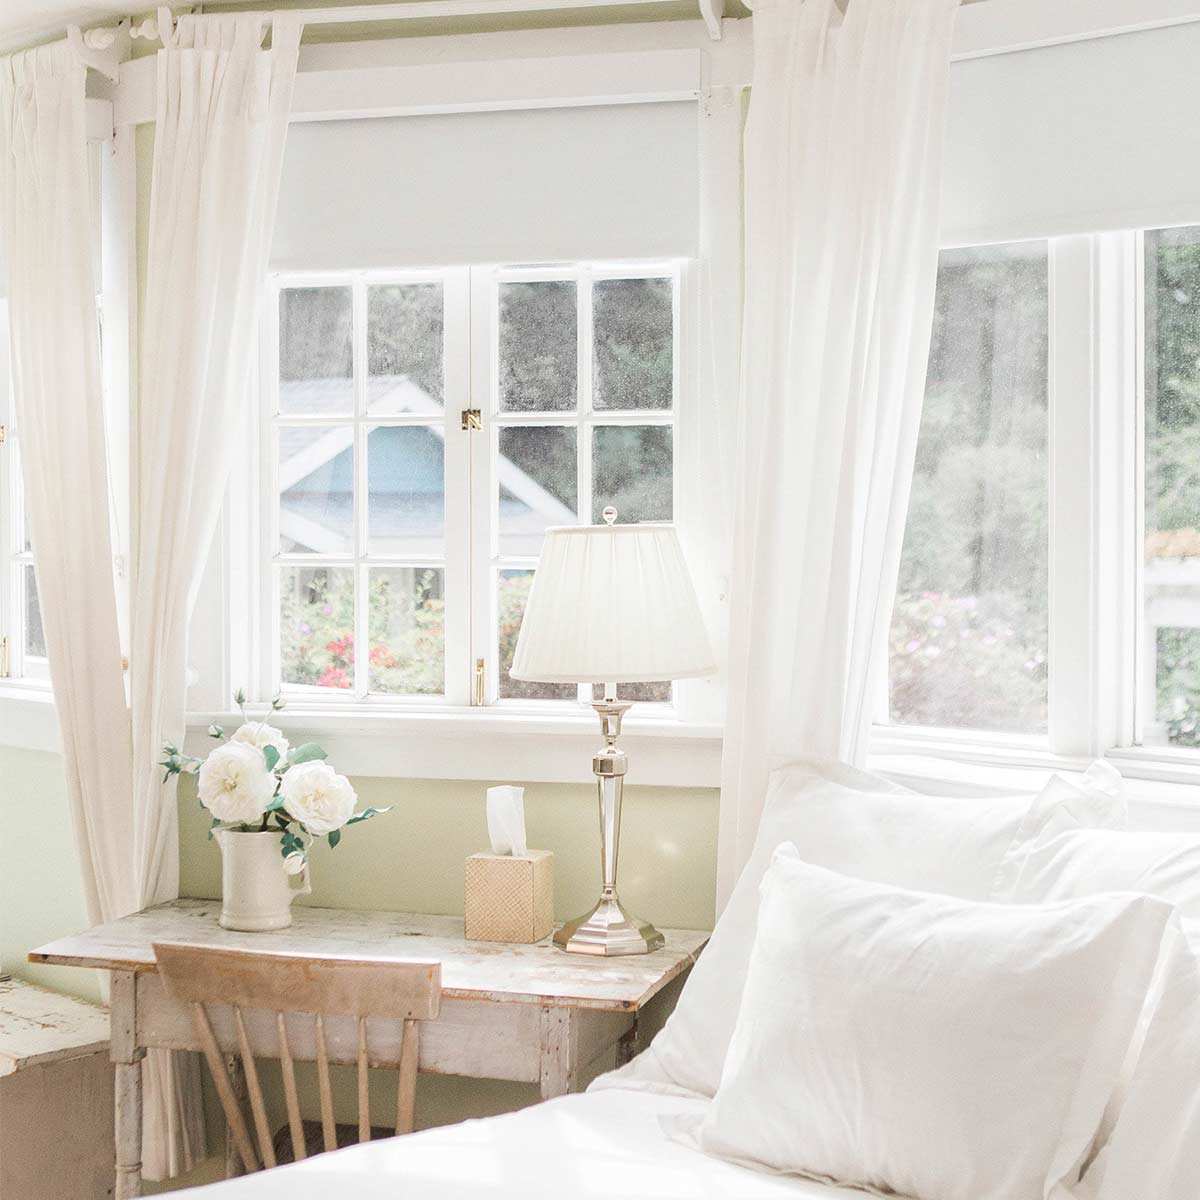 Clutter-free bright and airy bedroom with white linens and rustic desk.